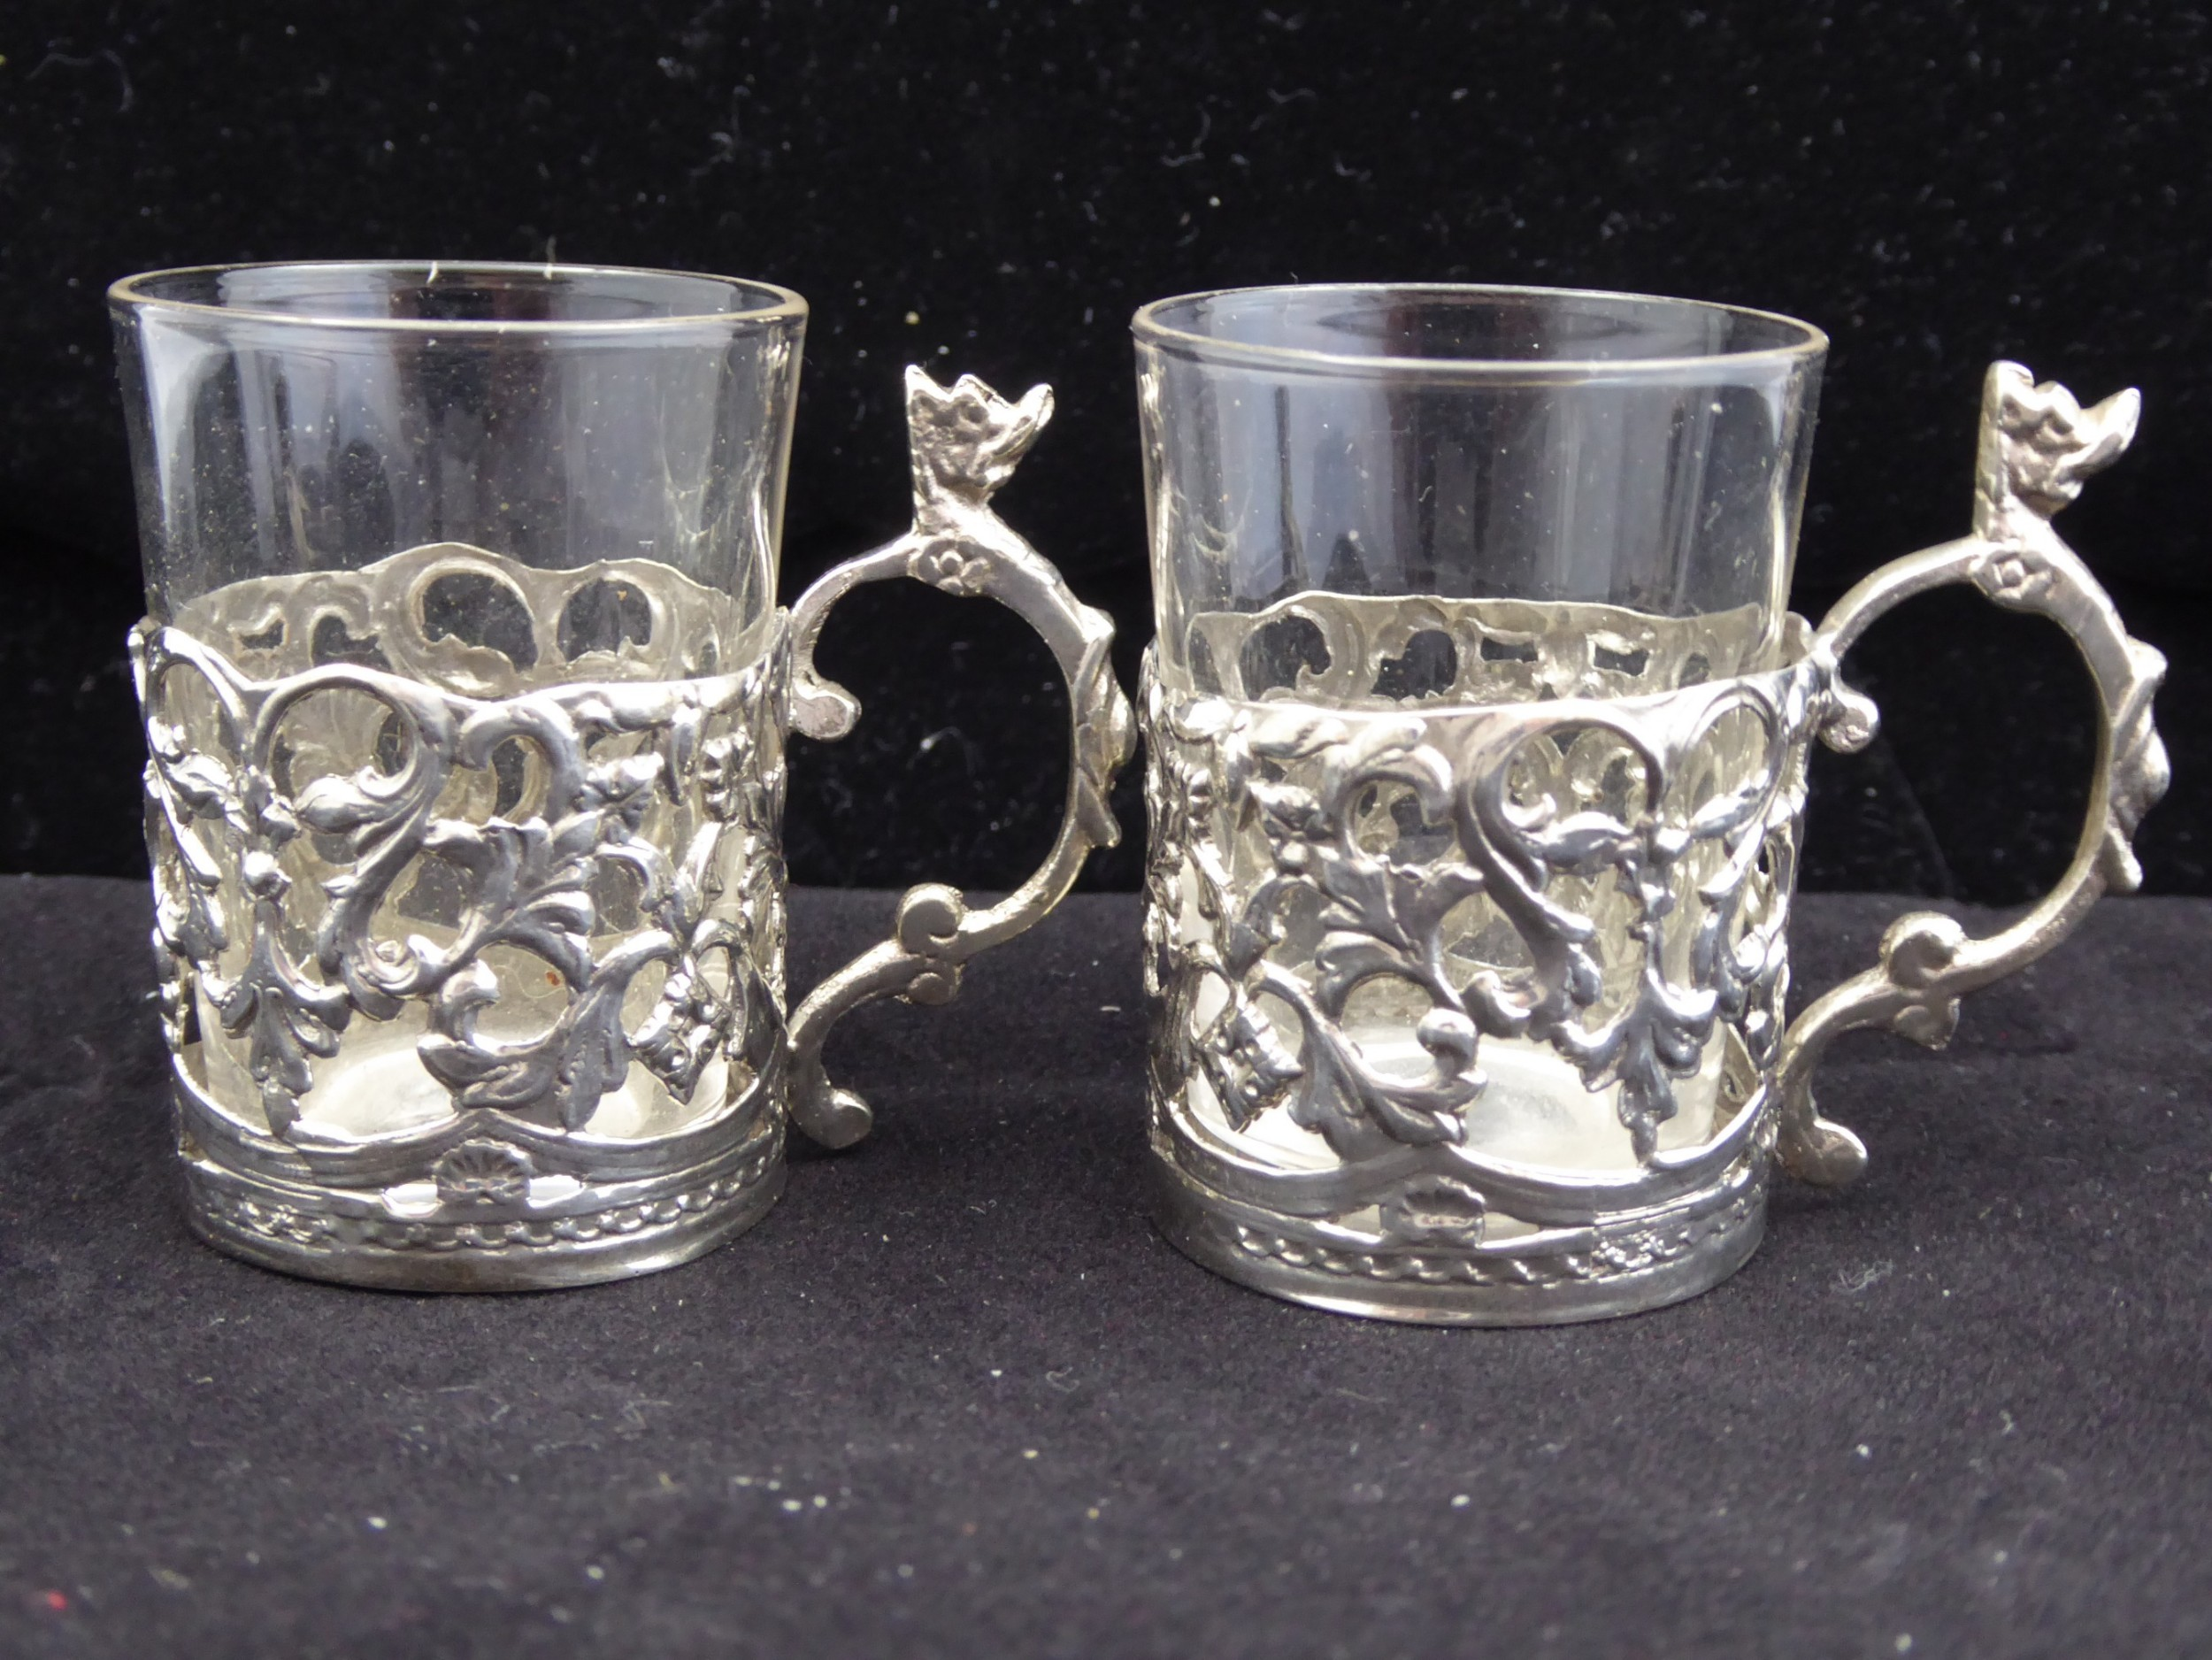 solid silver and glass shot glasses